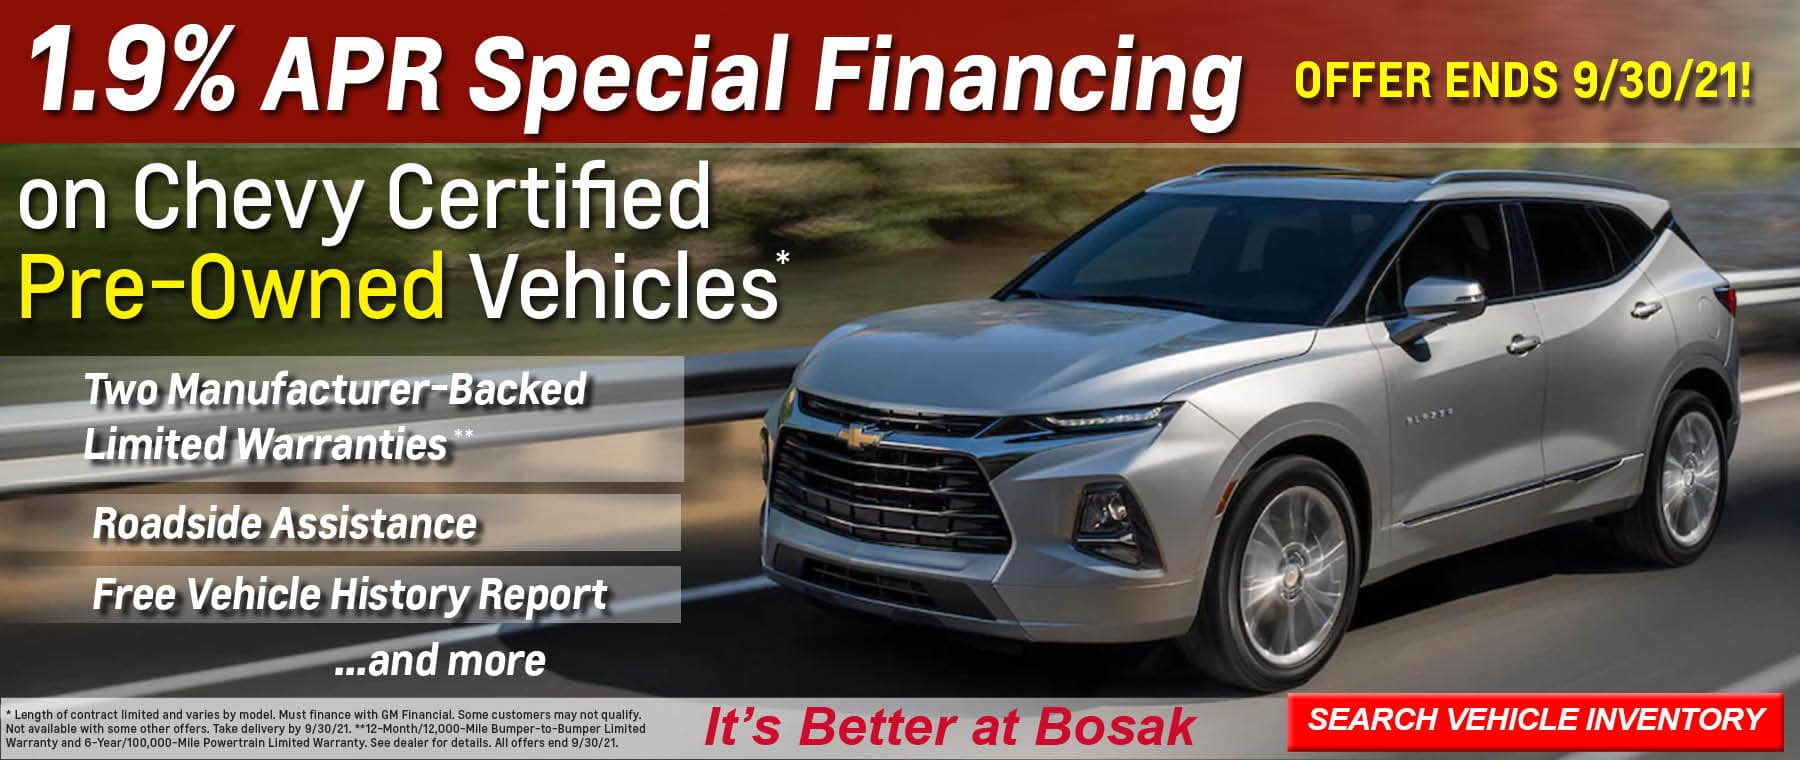 SEPT CHEVY BANNER 6 – SPECIAL APR FINANCING